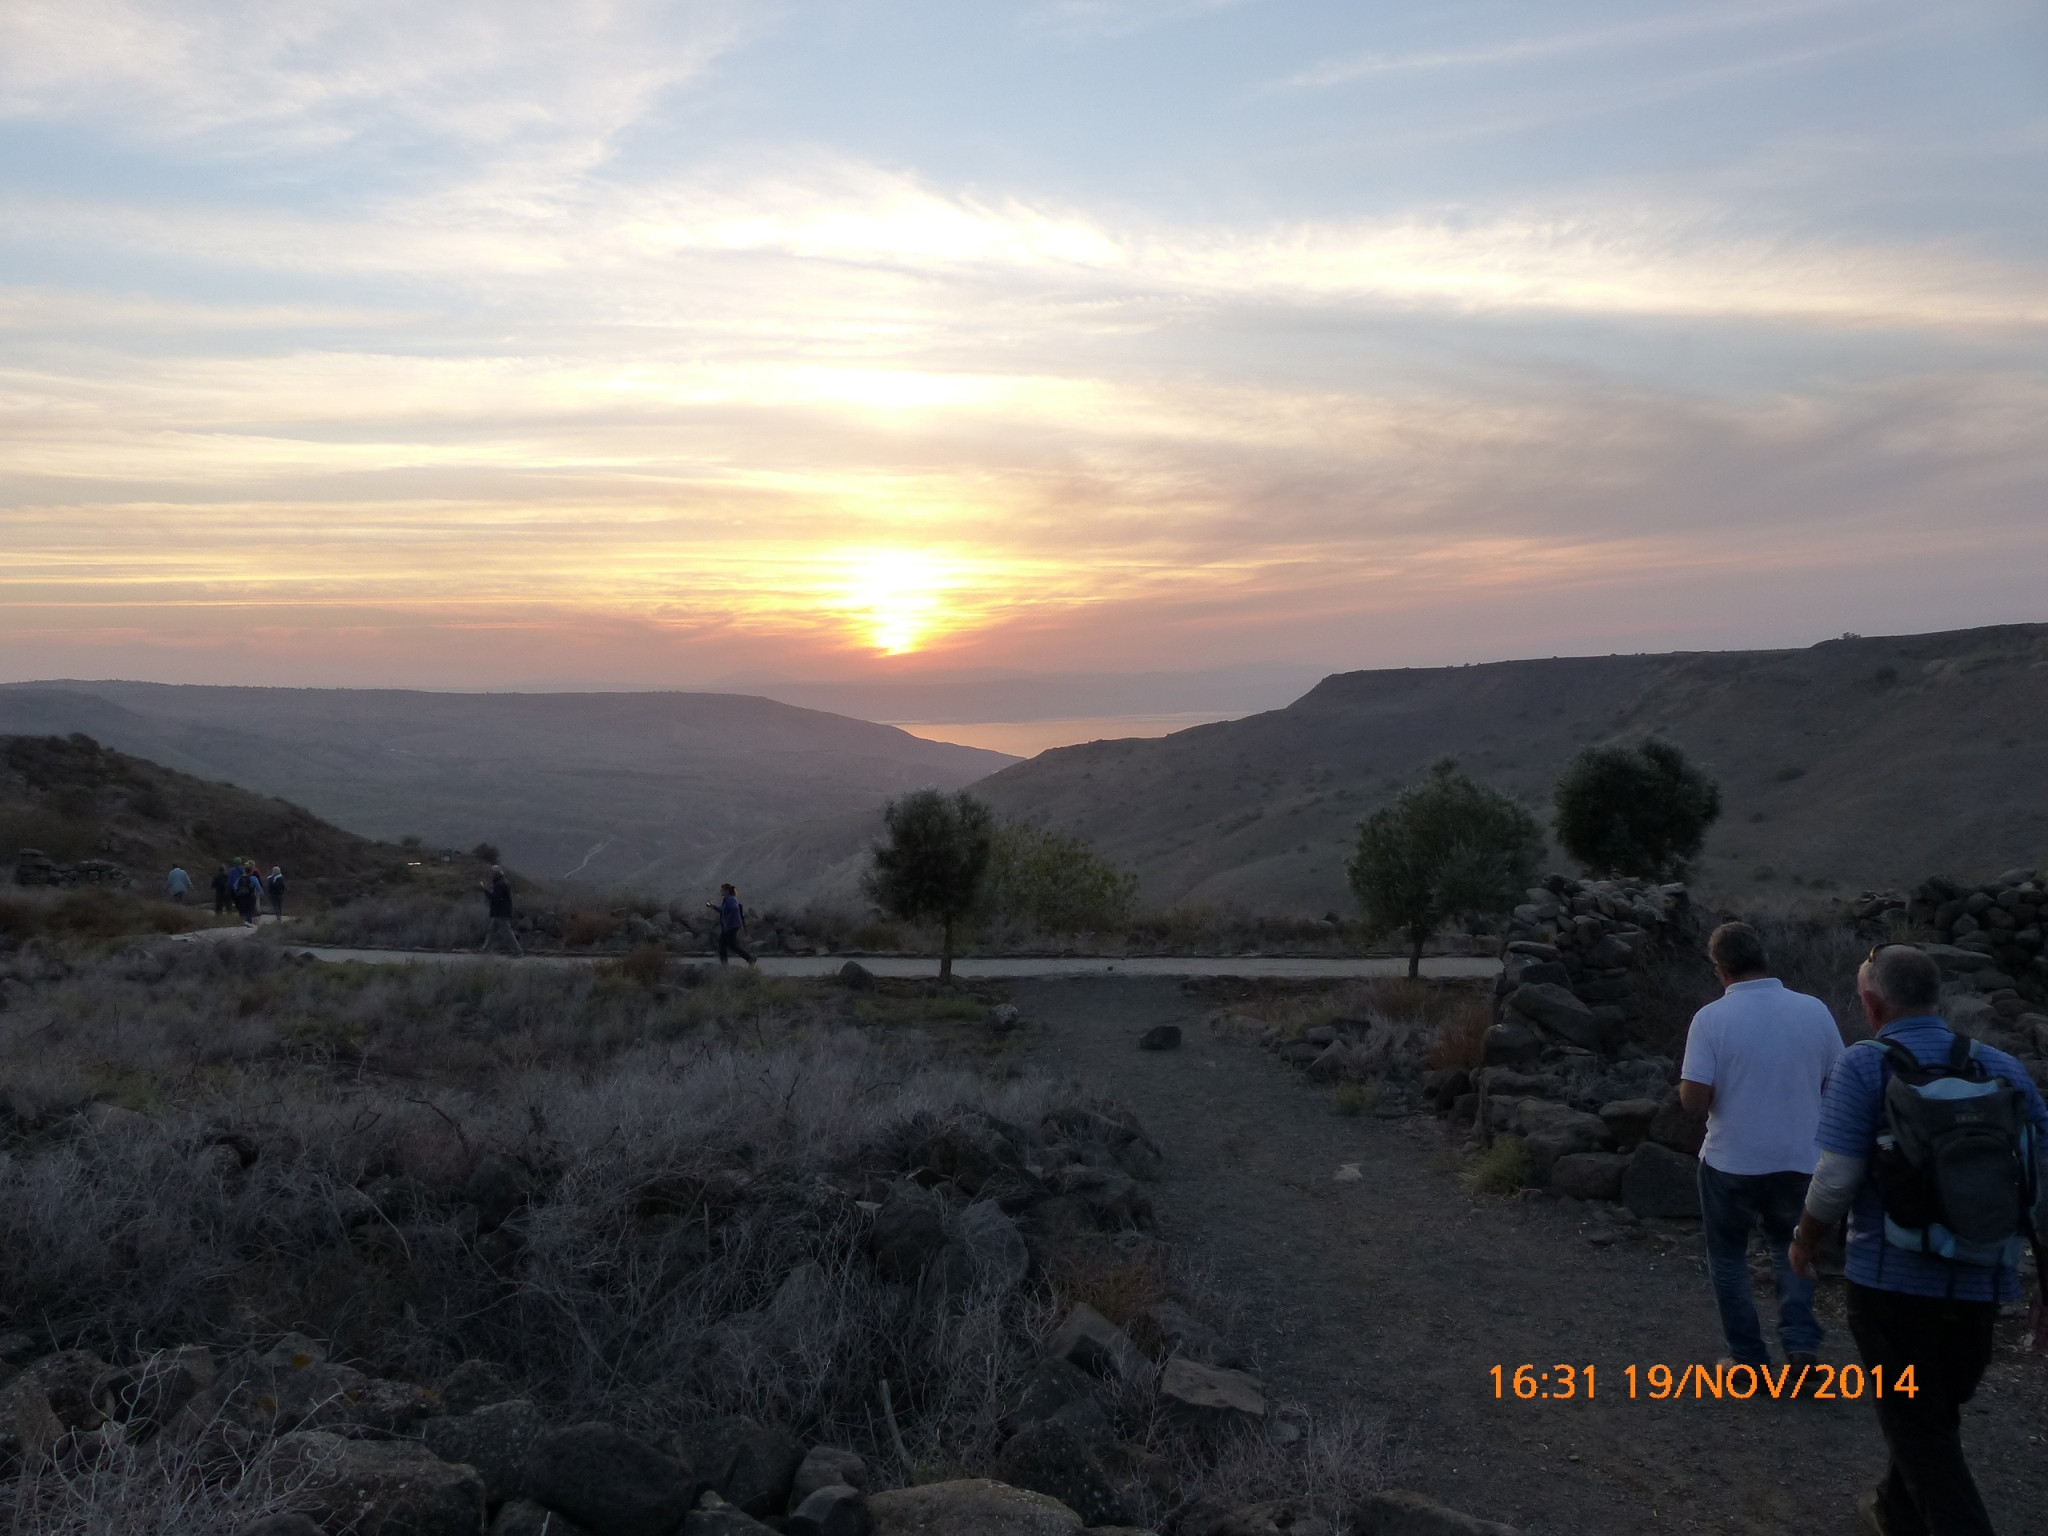 Sunset over the Golan